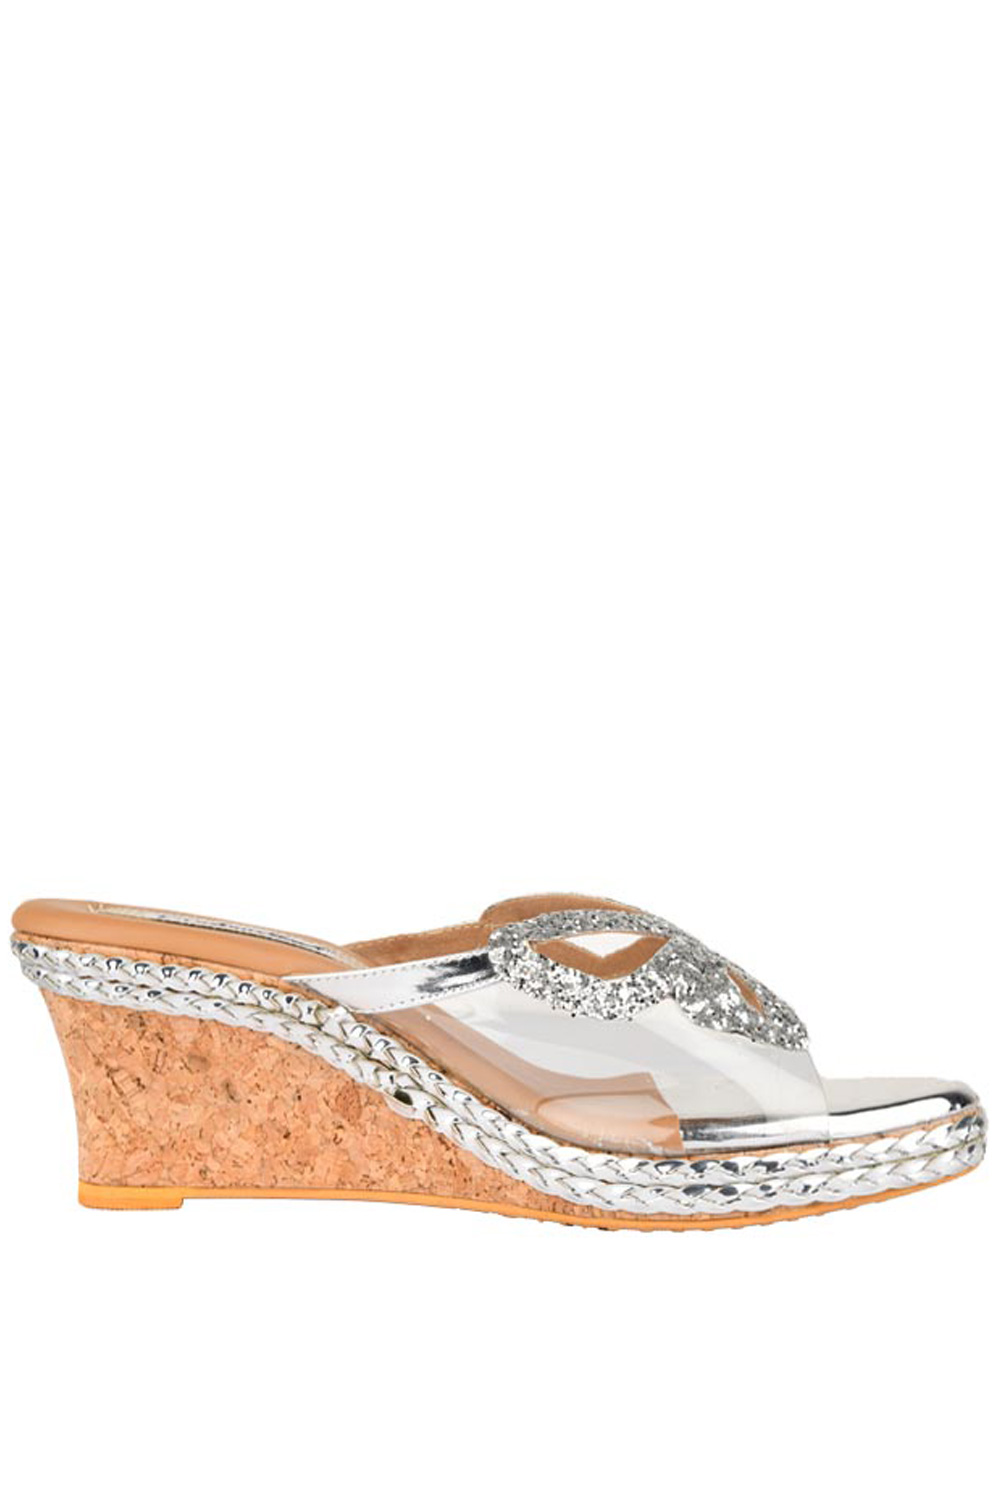 Silver Butterfly Wedges